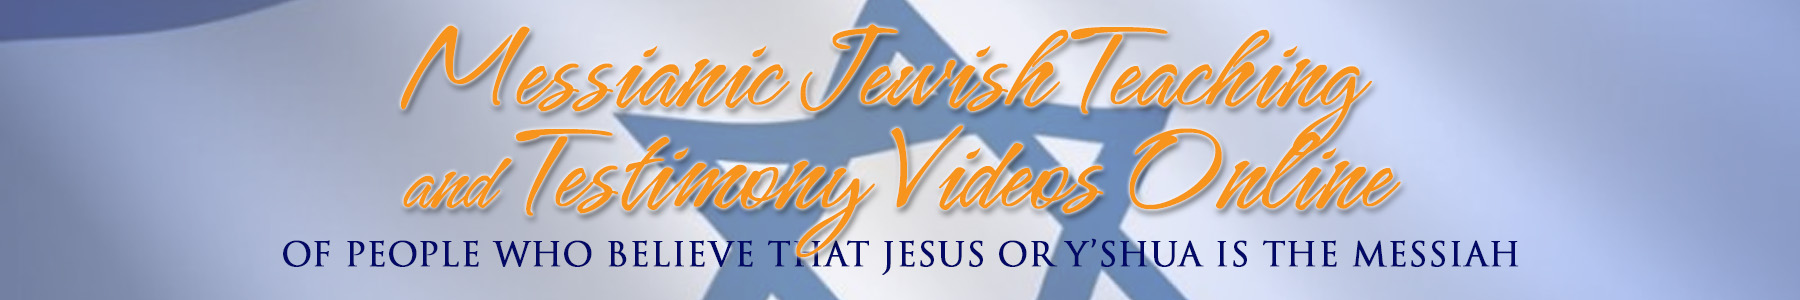 Jesus For Jews Videos